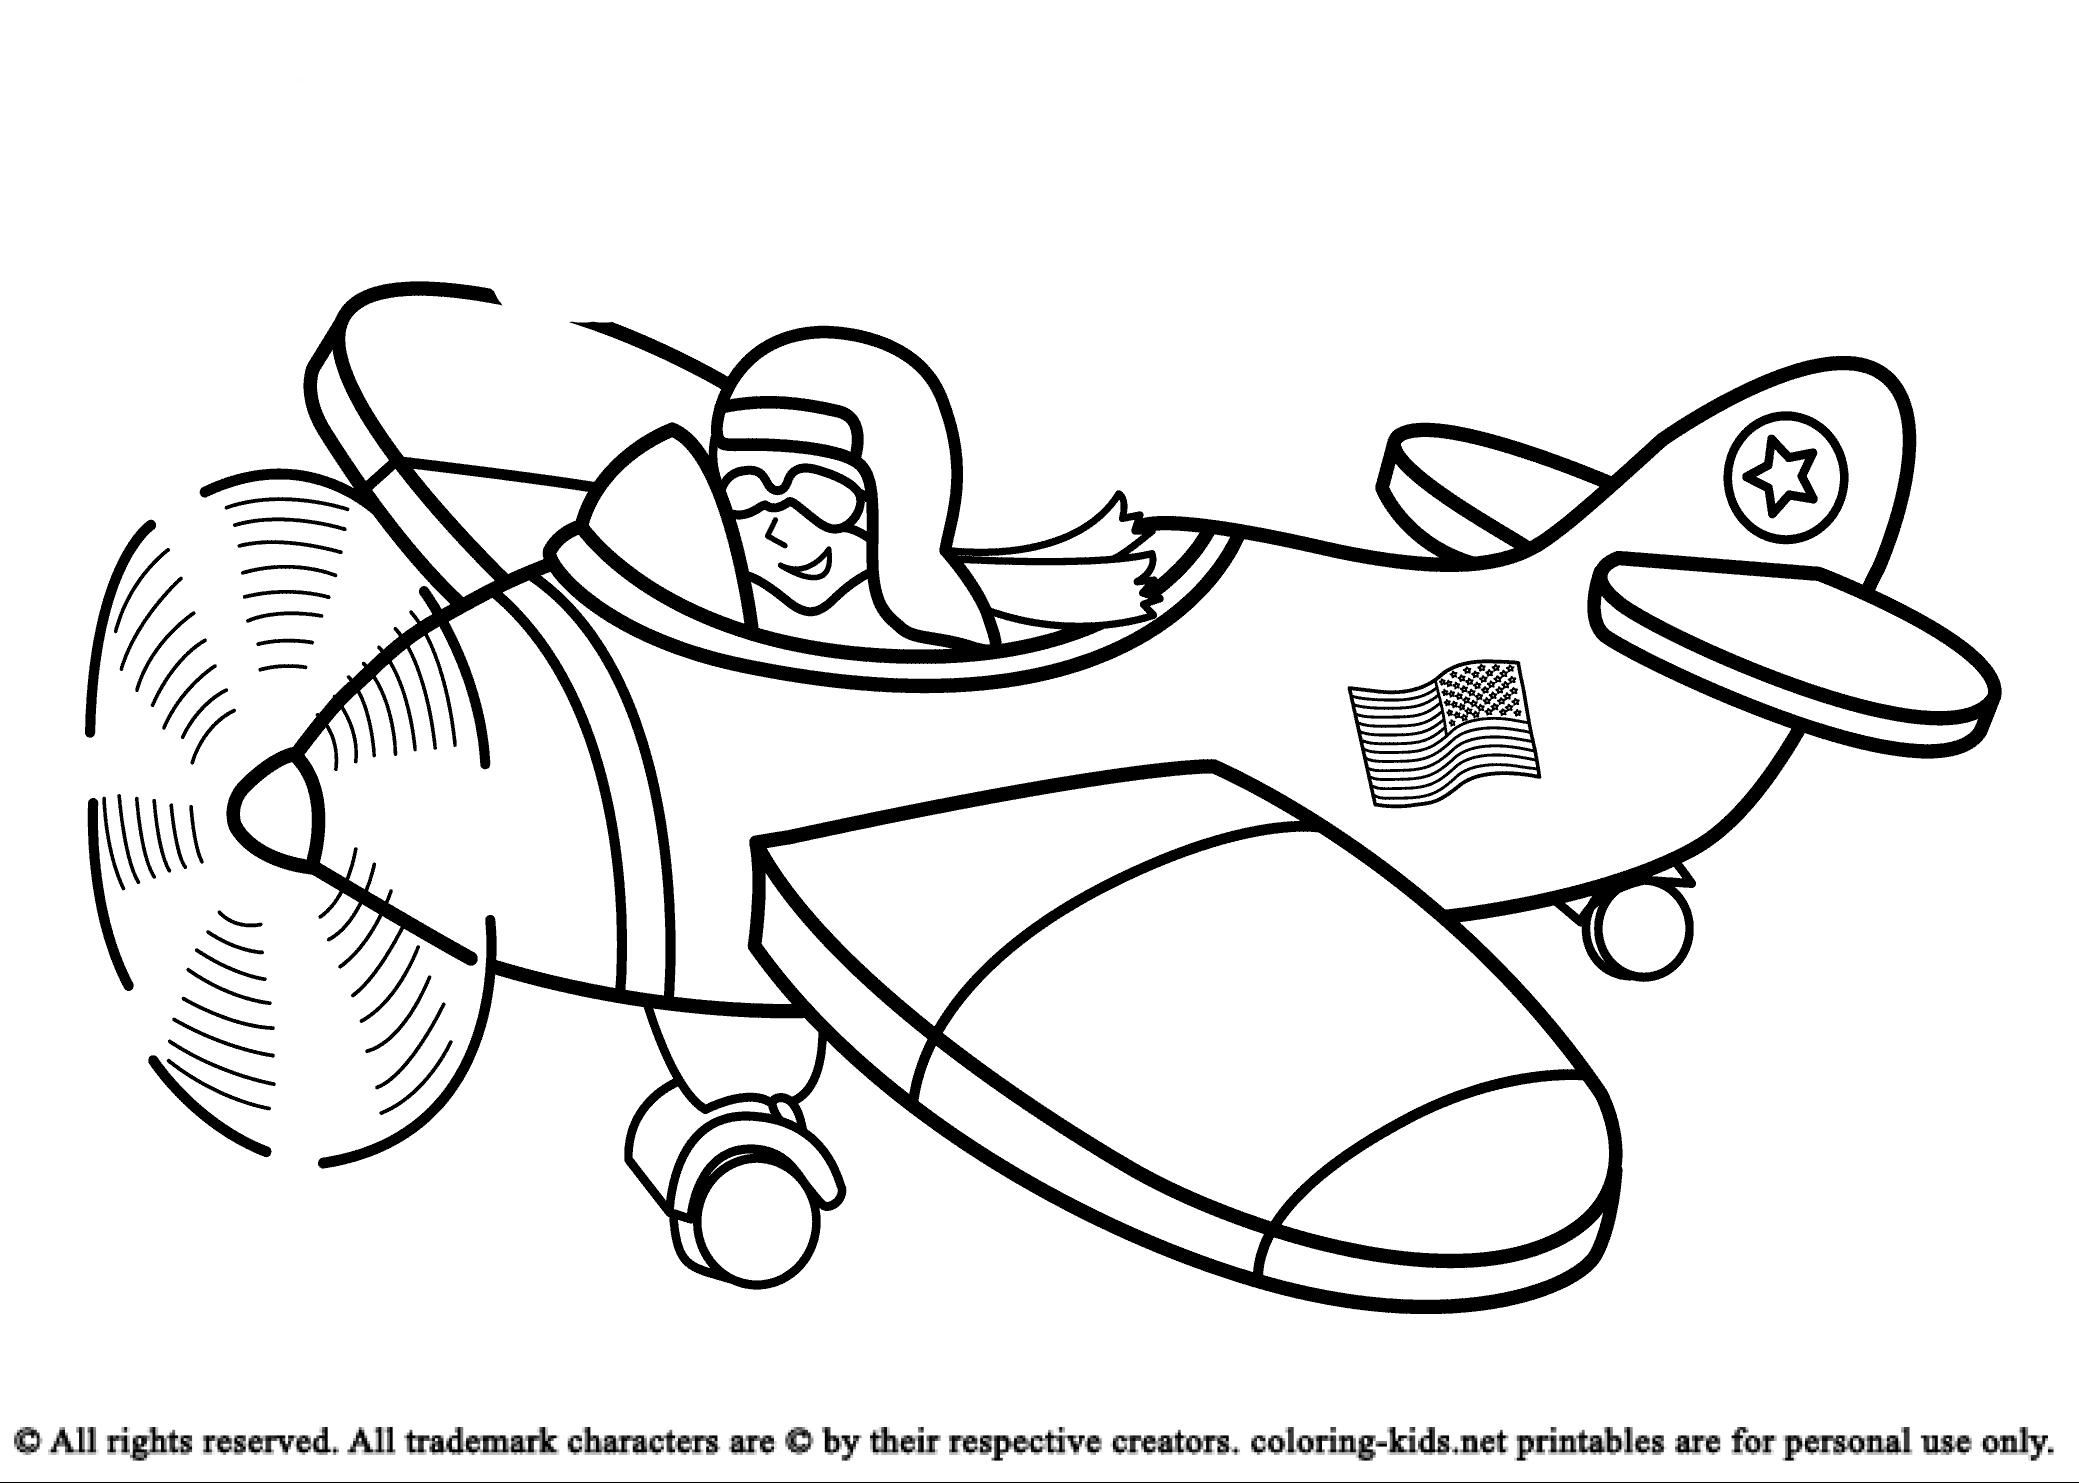 Airplane And Pilot Coloring Pages For Kids Coloring Pages For Kids Airplane Coloring Pages Coloring Pages Coloring For Kids